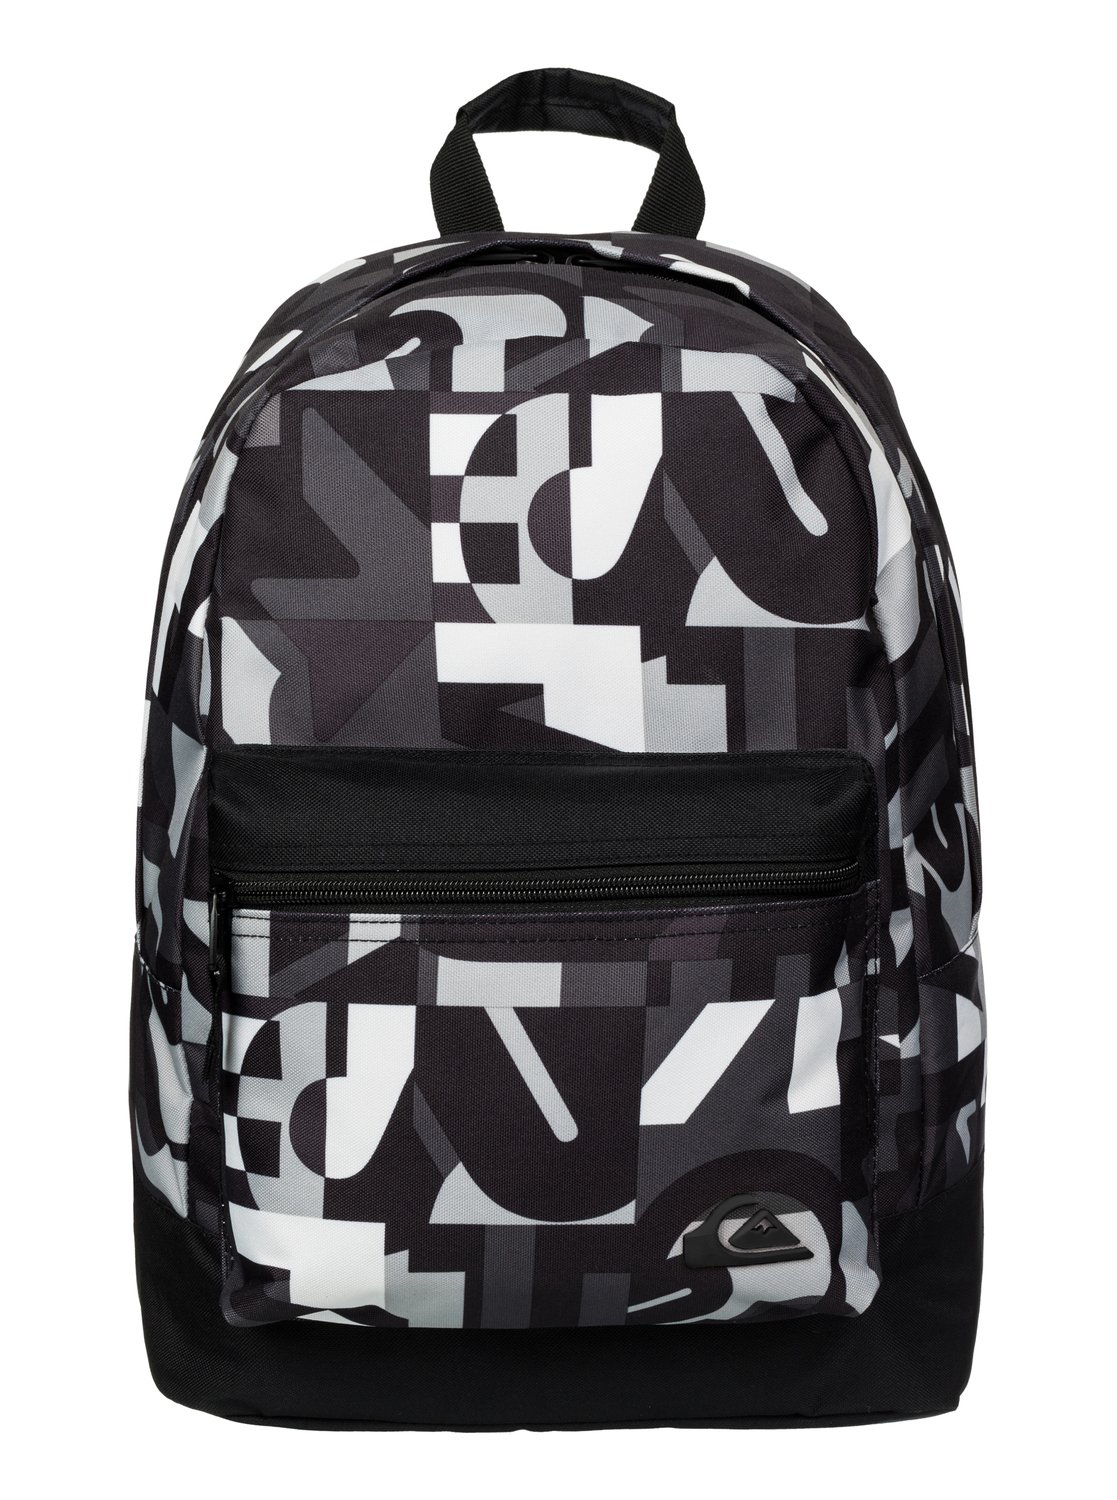 A Good Backpack For High School - CEAGESP b885c4c61860